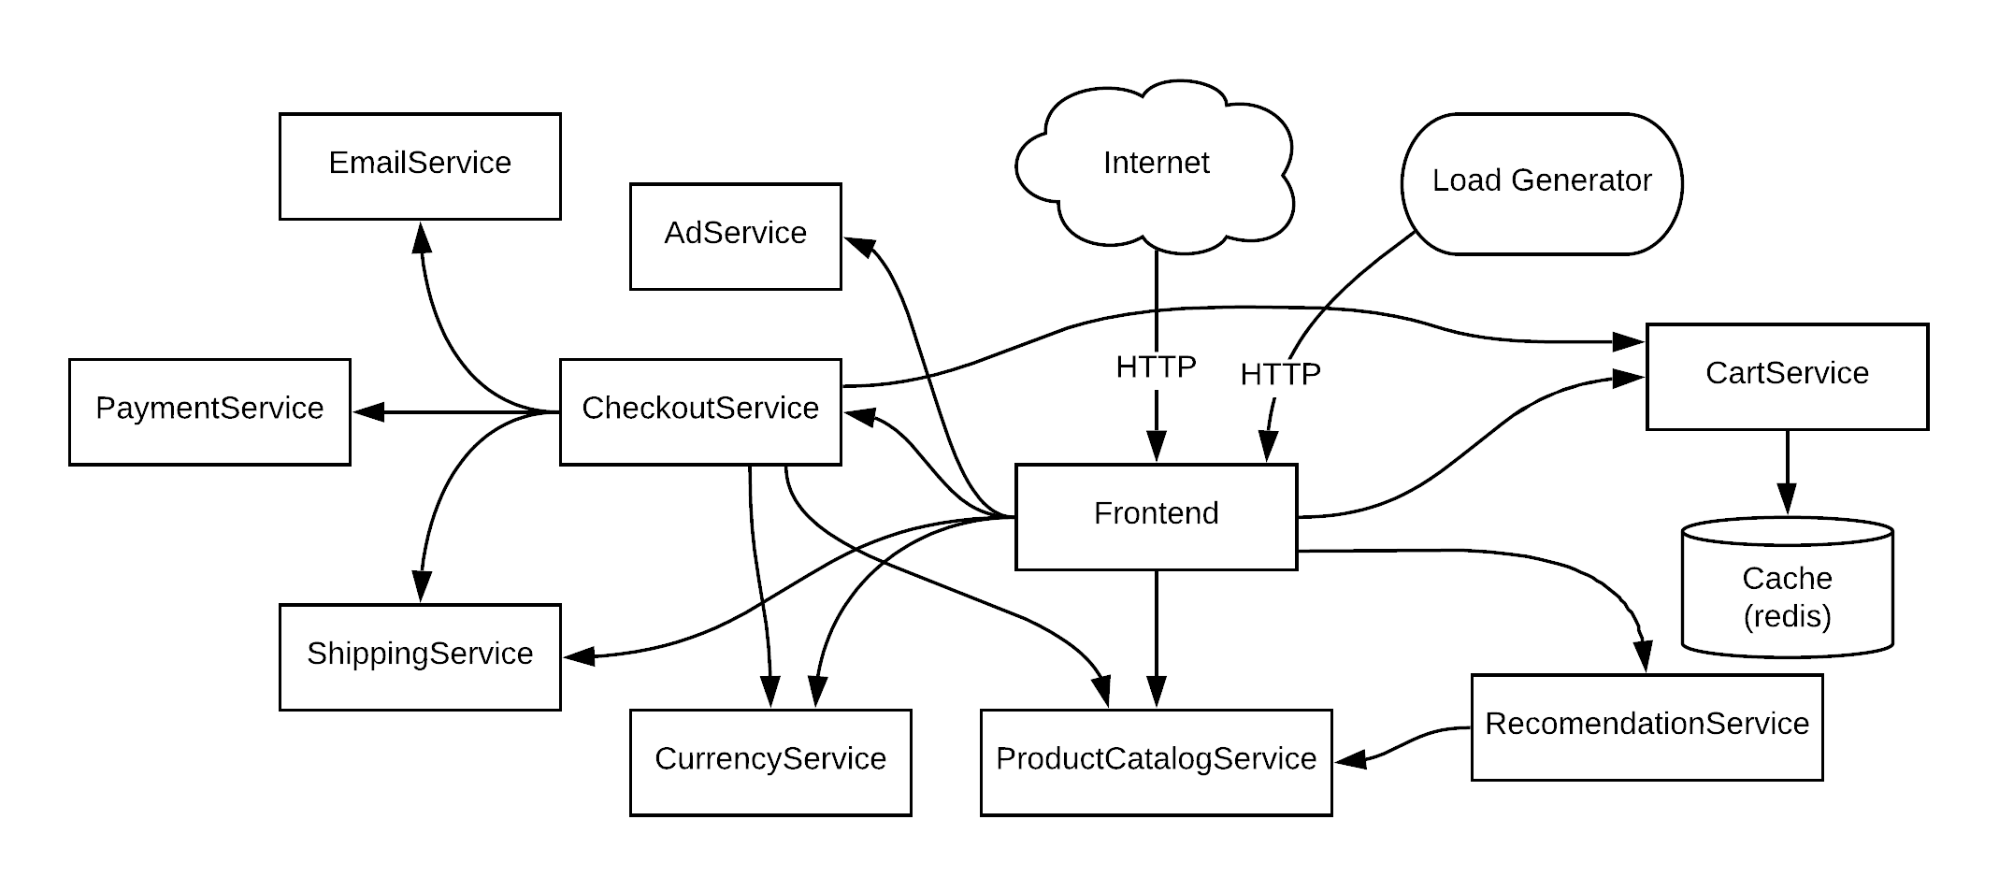 Map of the Online Boutique microservice application